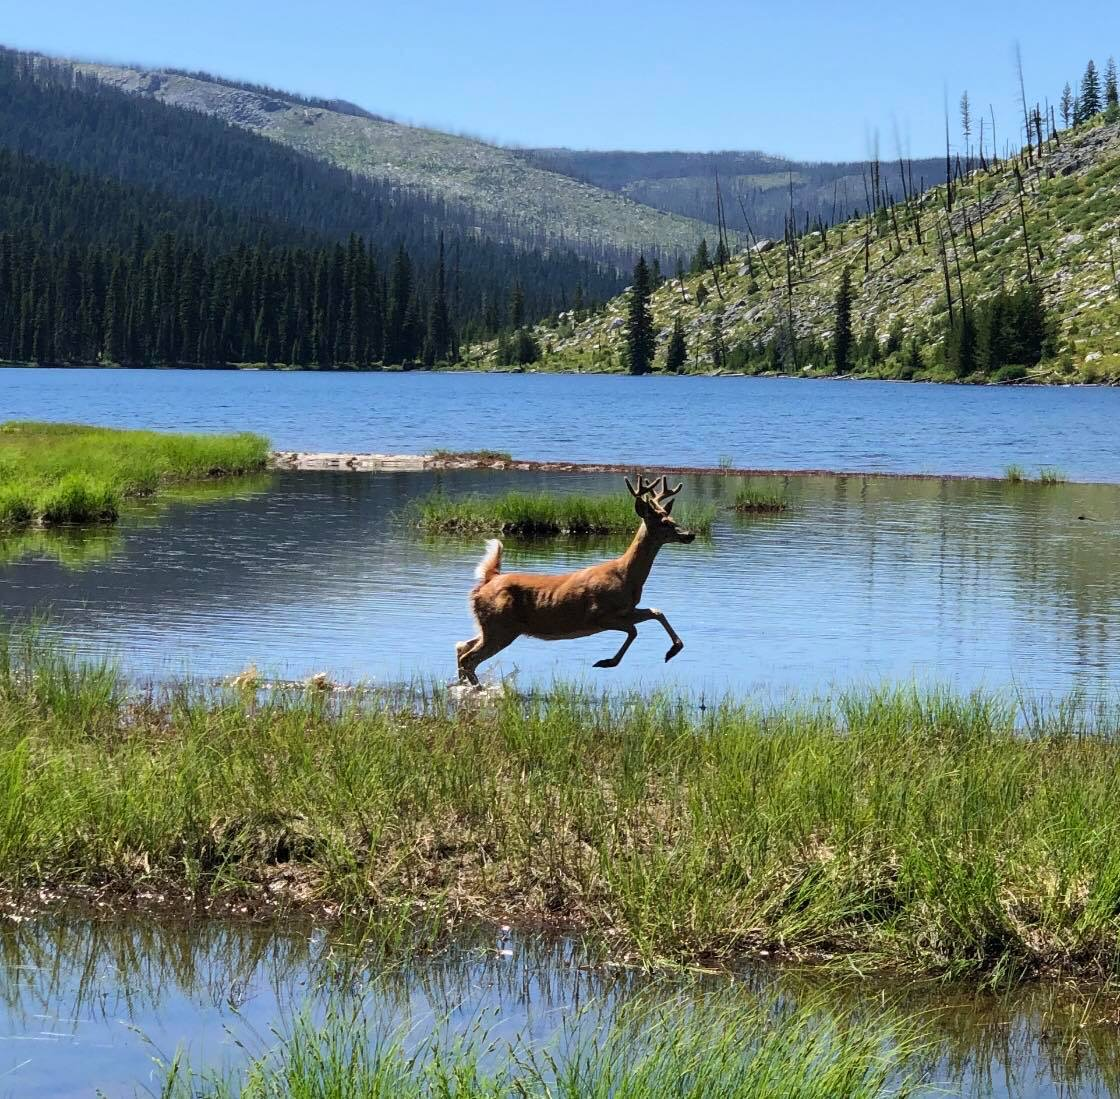 Awesome pic taken by my buddy @jbrunsfeld on Aug. 4, at Big Sandy Lake in the Bitterroot Wilderness, Idaho.